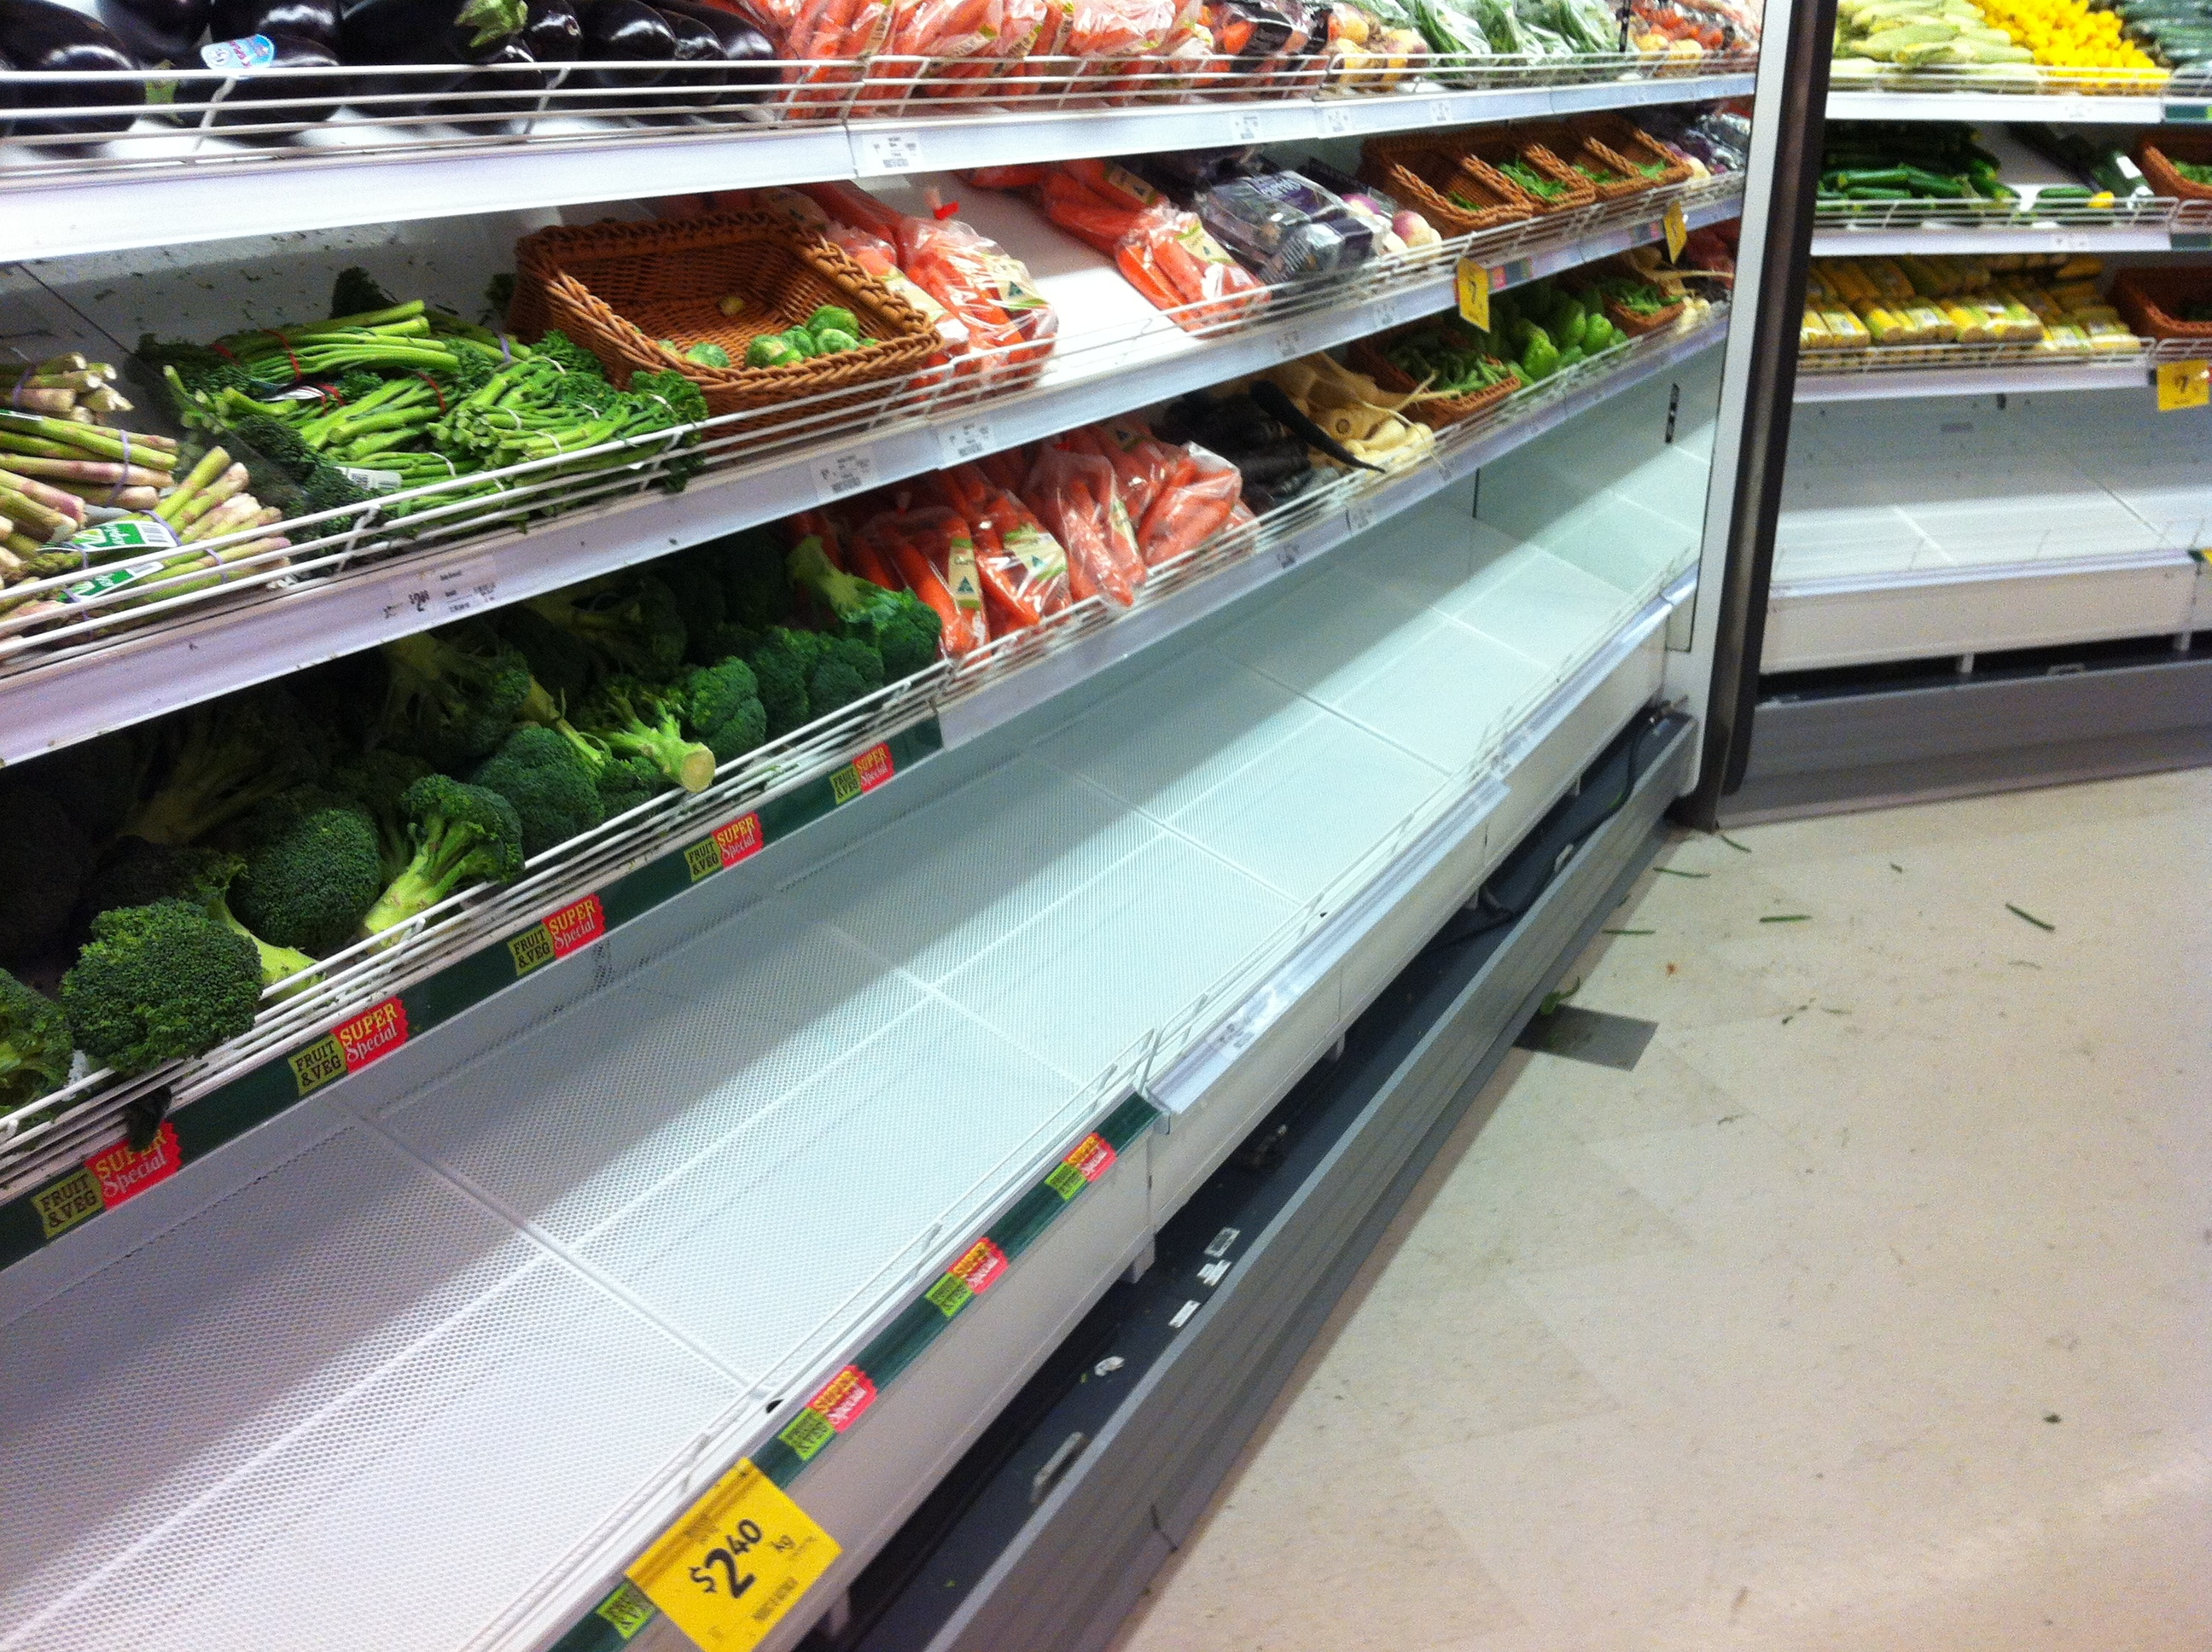 Grocery case with electrostatic spray and fabrication works completed onsite